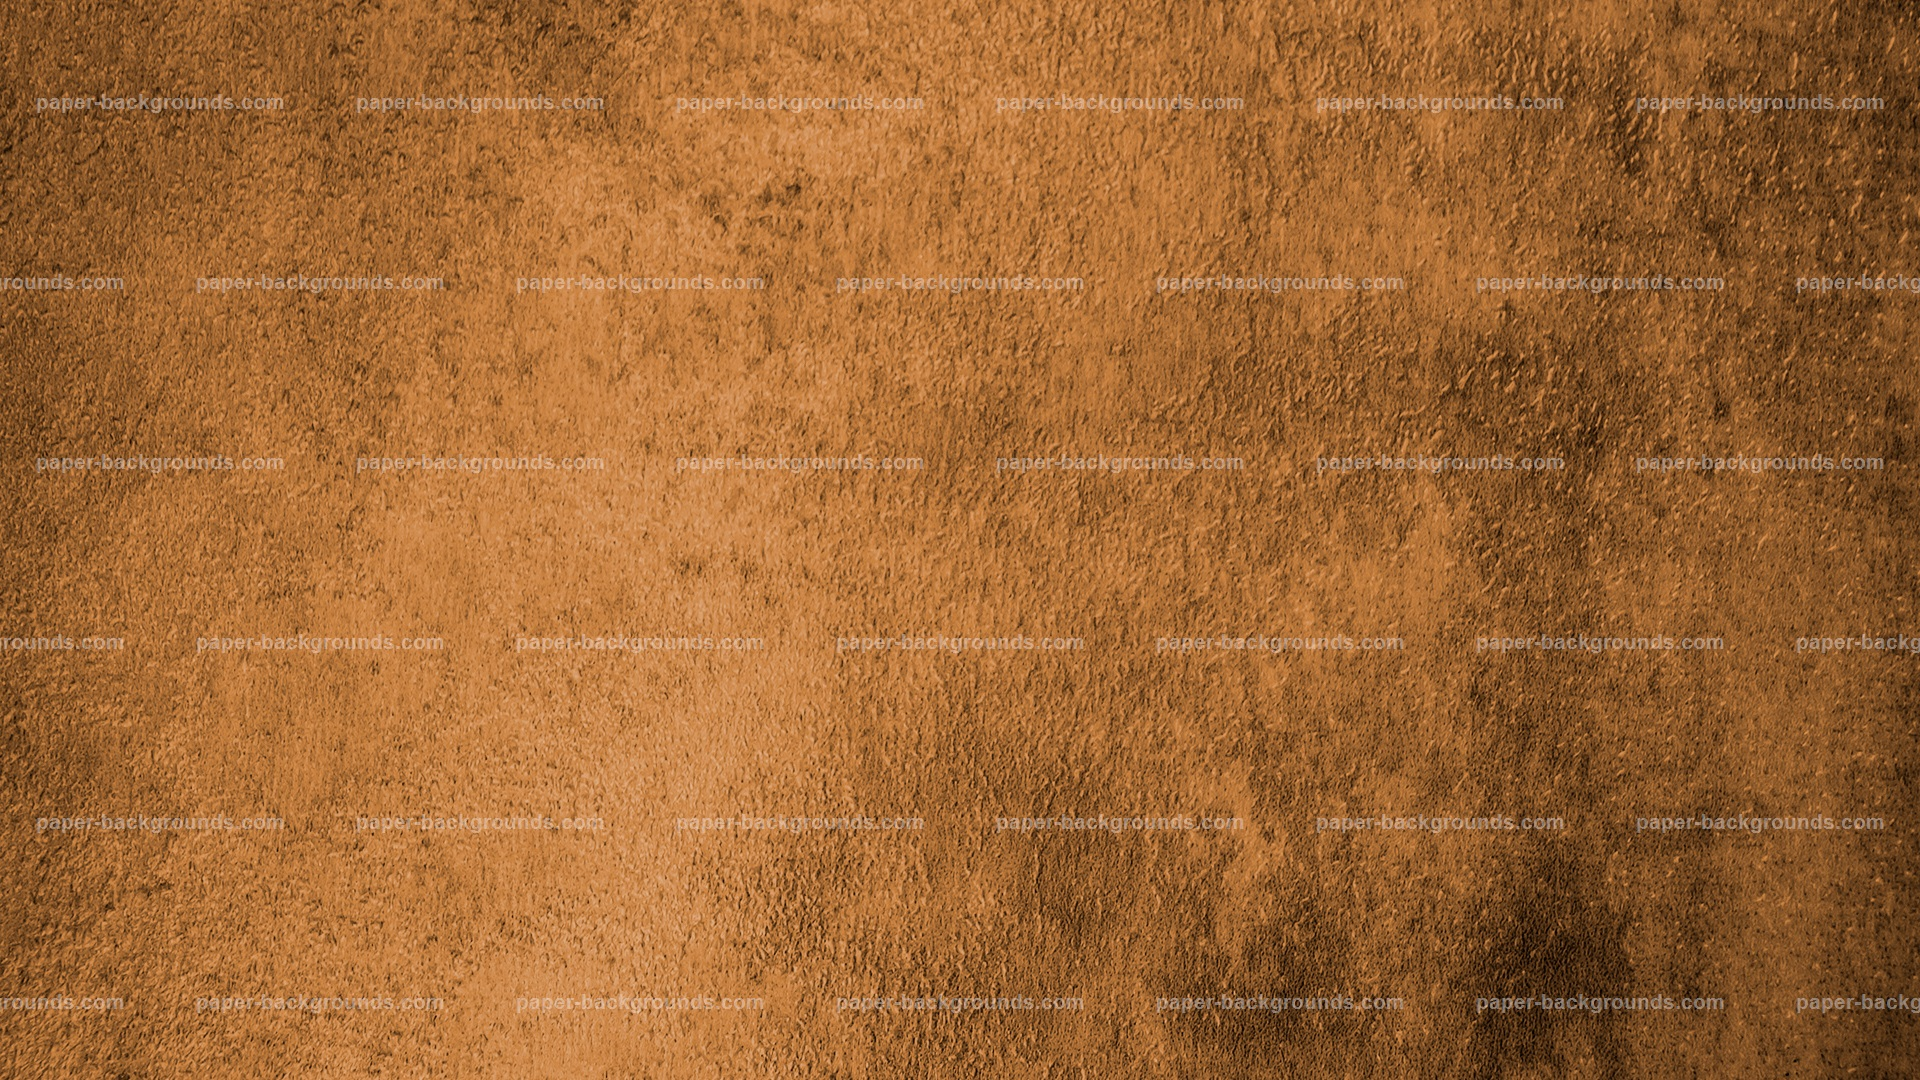 Brown Grunge Background Texture HD